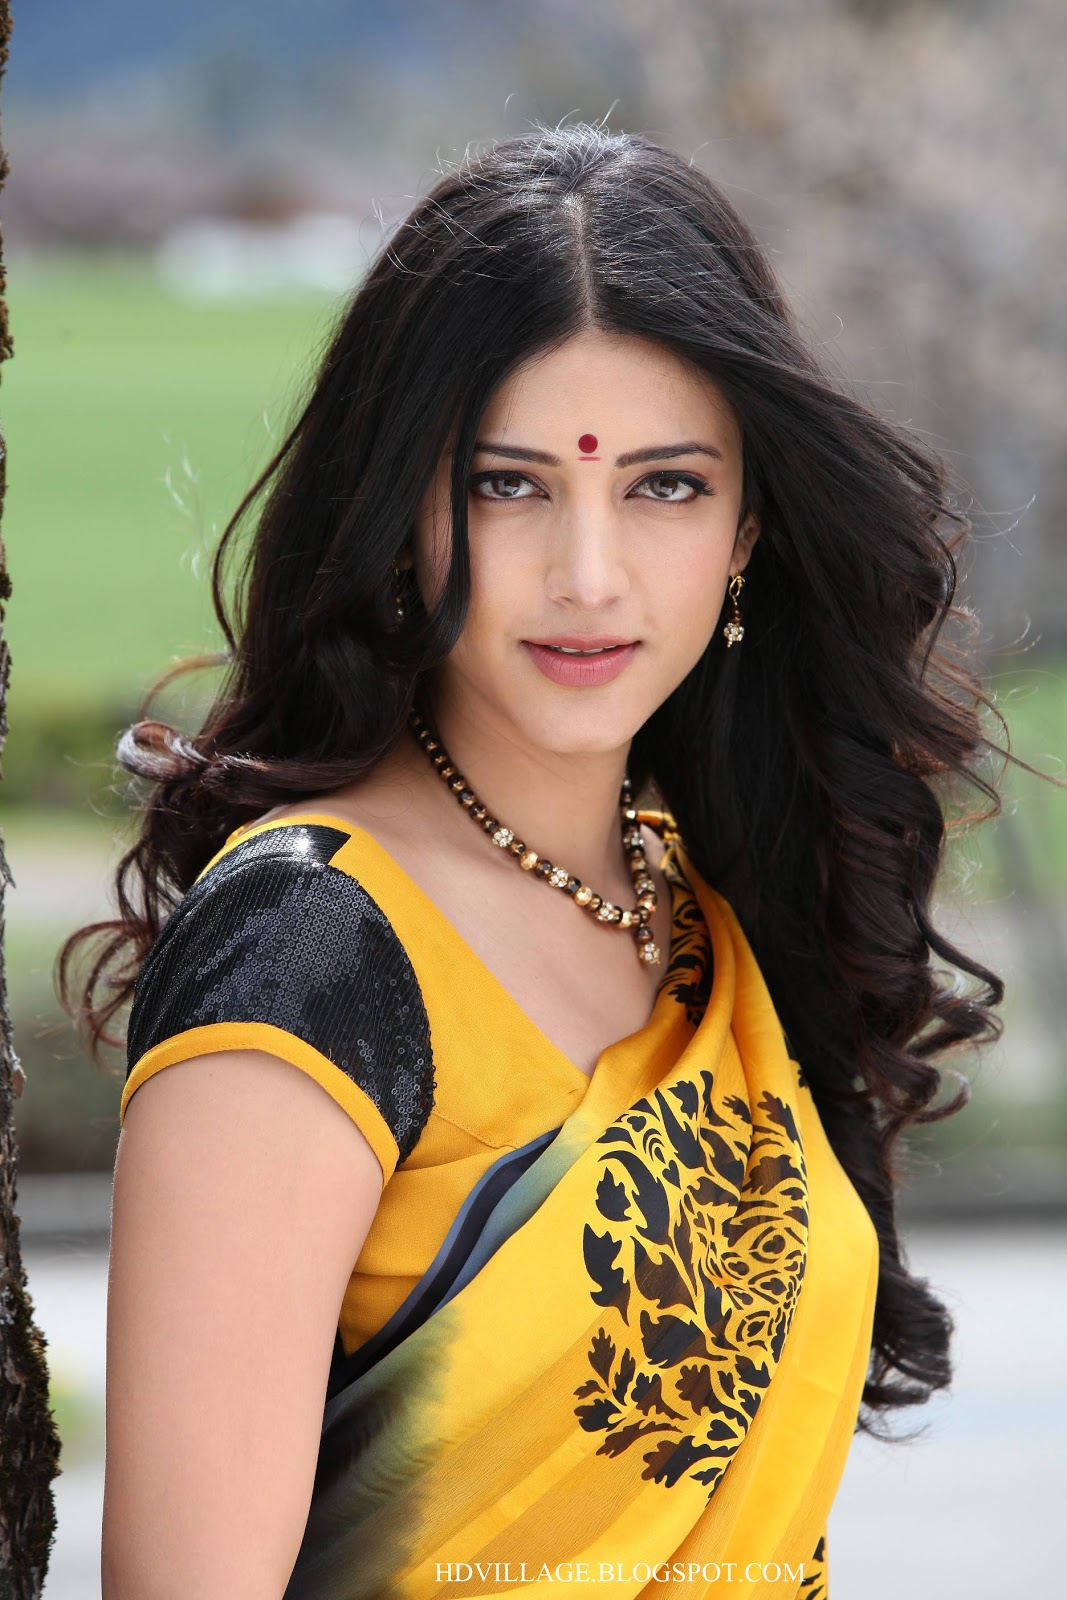 HD WALLPAPERS: SHRUTHI HASSAN HD WALLPAPERS